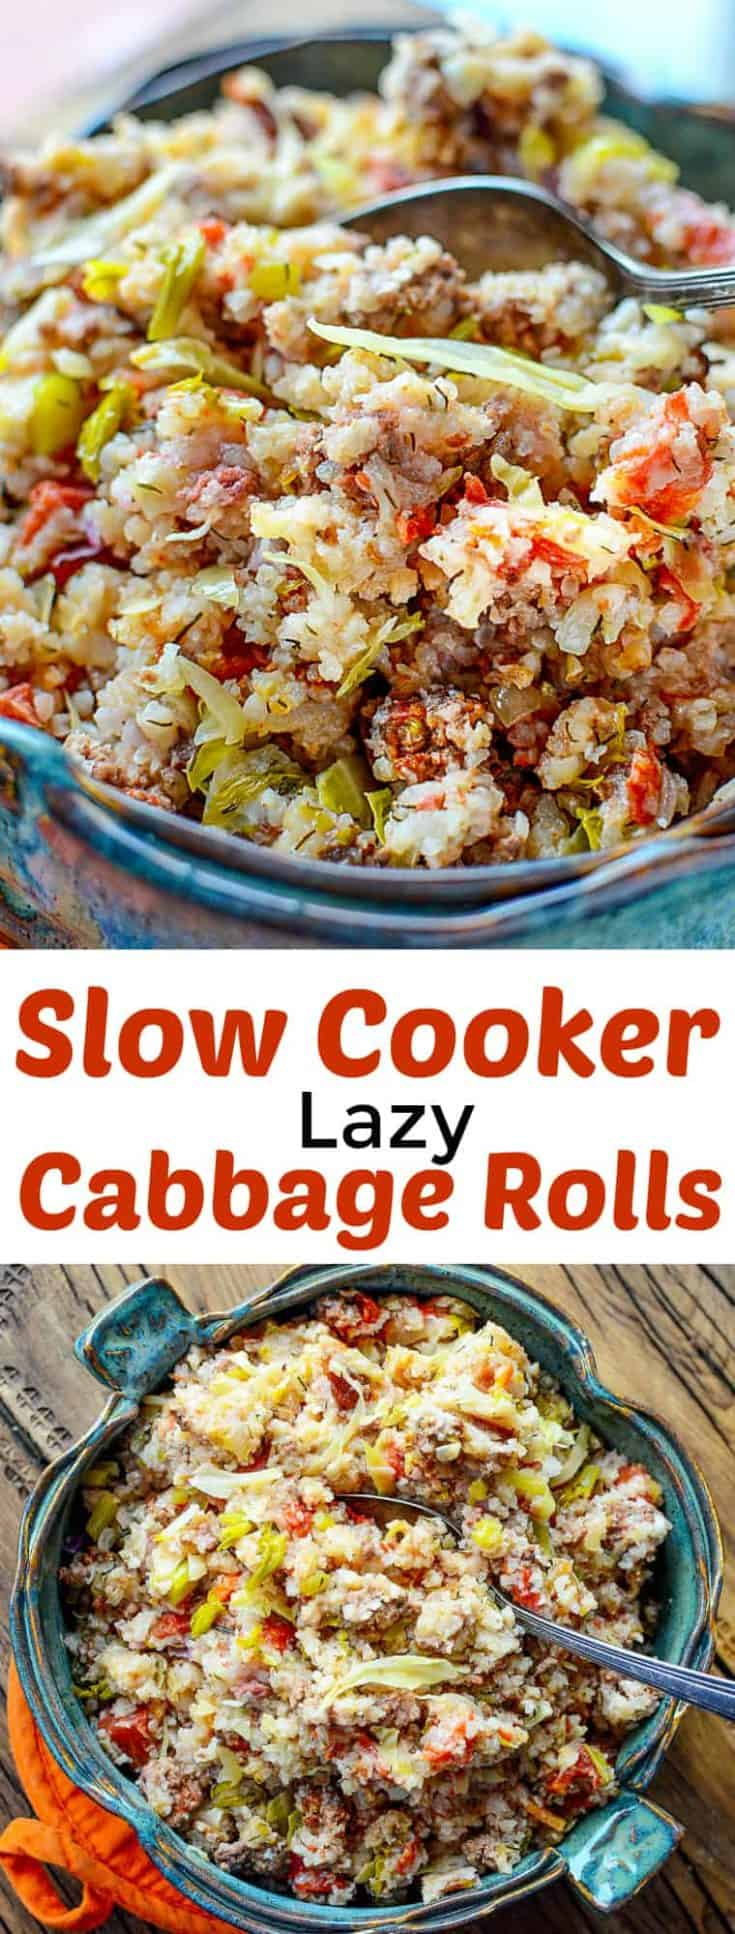 Slow Cooker Lazy Cabbage Rolls have all the taste but with the ease of the crockpot. you can serve this as a side dish along with some garlic sausage, or eat as it on its own. #slowcooker #cabbagerolls #crockpot